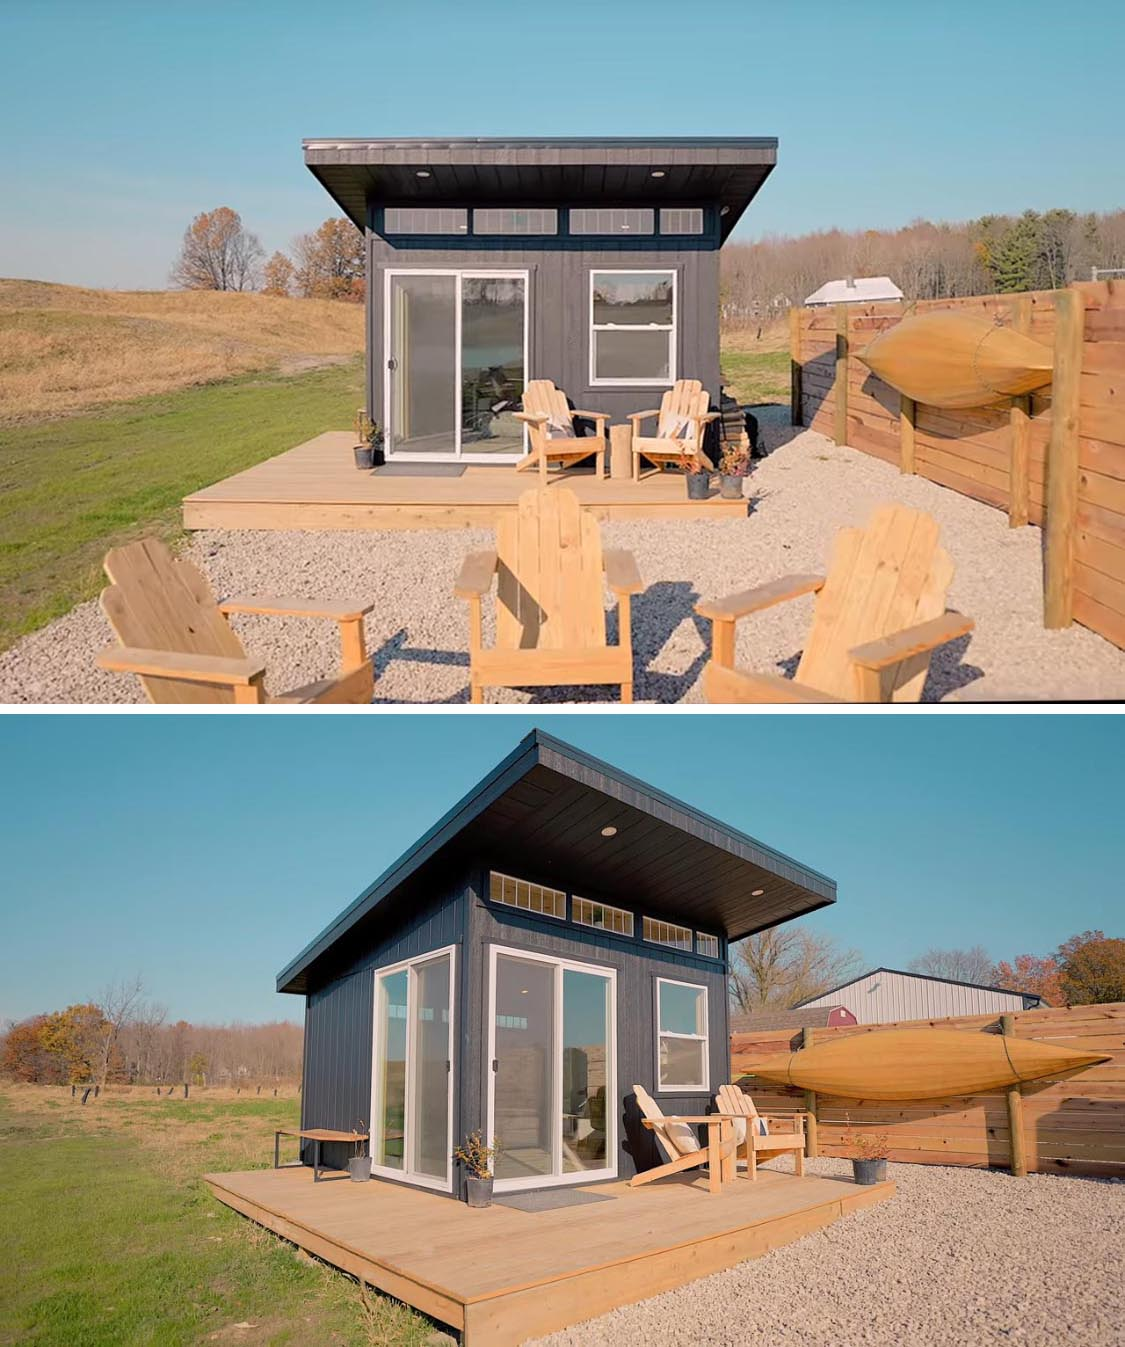 The exterior of this tiny house has a modern design with a sloped roof, wood siding with a black finish, and clerestory windows.